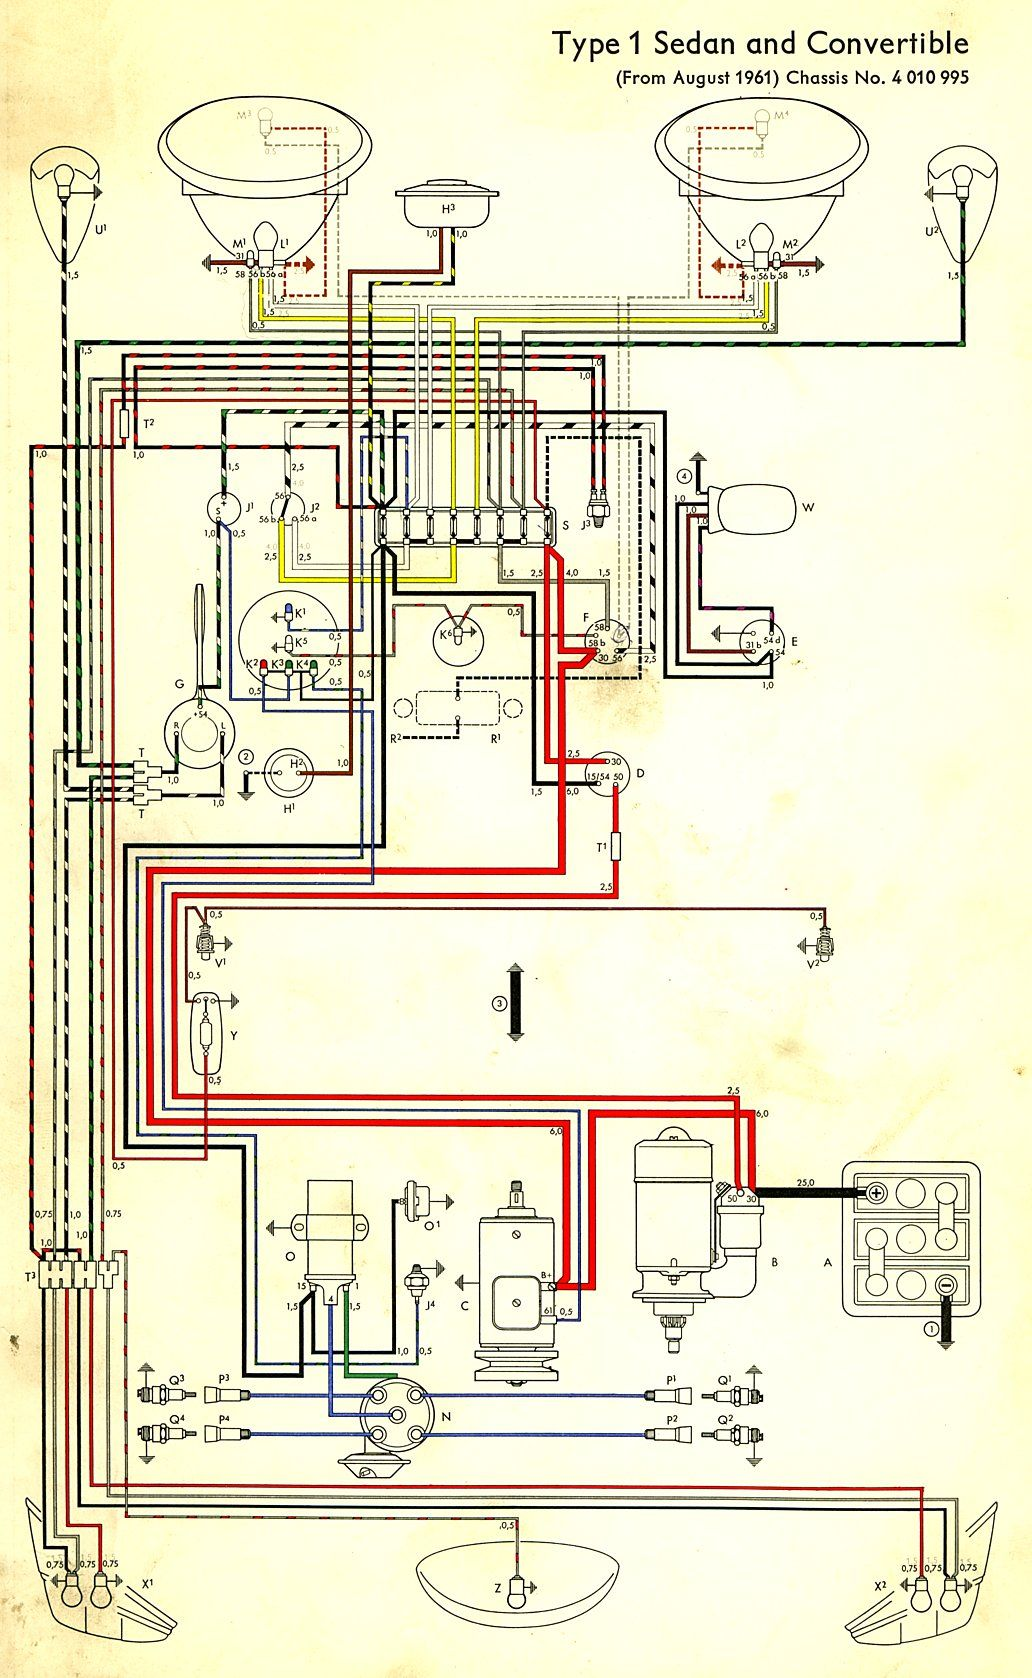 1967 vw beetle wiring harness diagram wiring diagram in color. 1964 vw bug, beetle, convertible ...